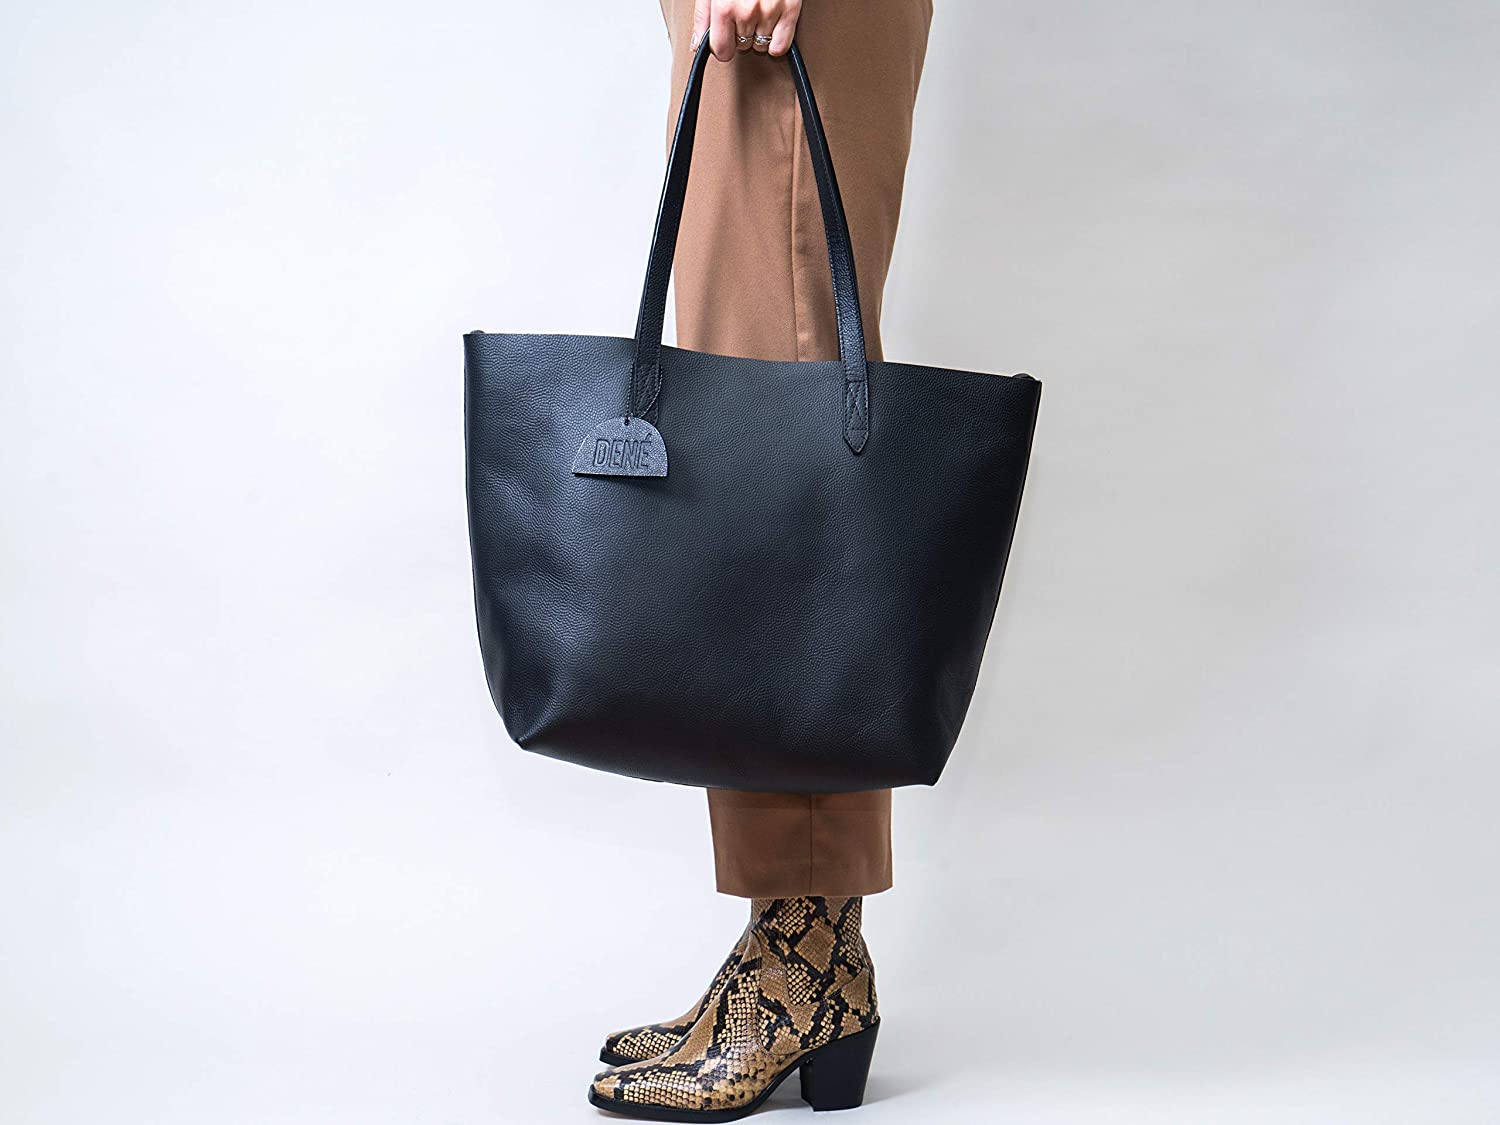 "658ade9b1 Amazon.com: Leather Tote Bag for Women. Made with Genuine Leather. This  Extra Large Black Tote Bag Fits 15"" & 17"" Laptops: Clothing"